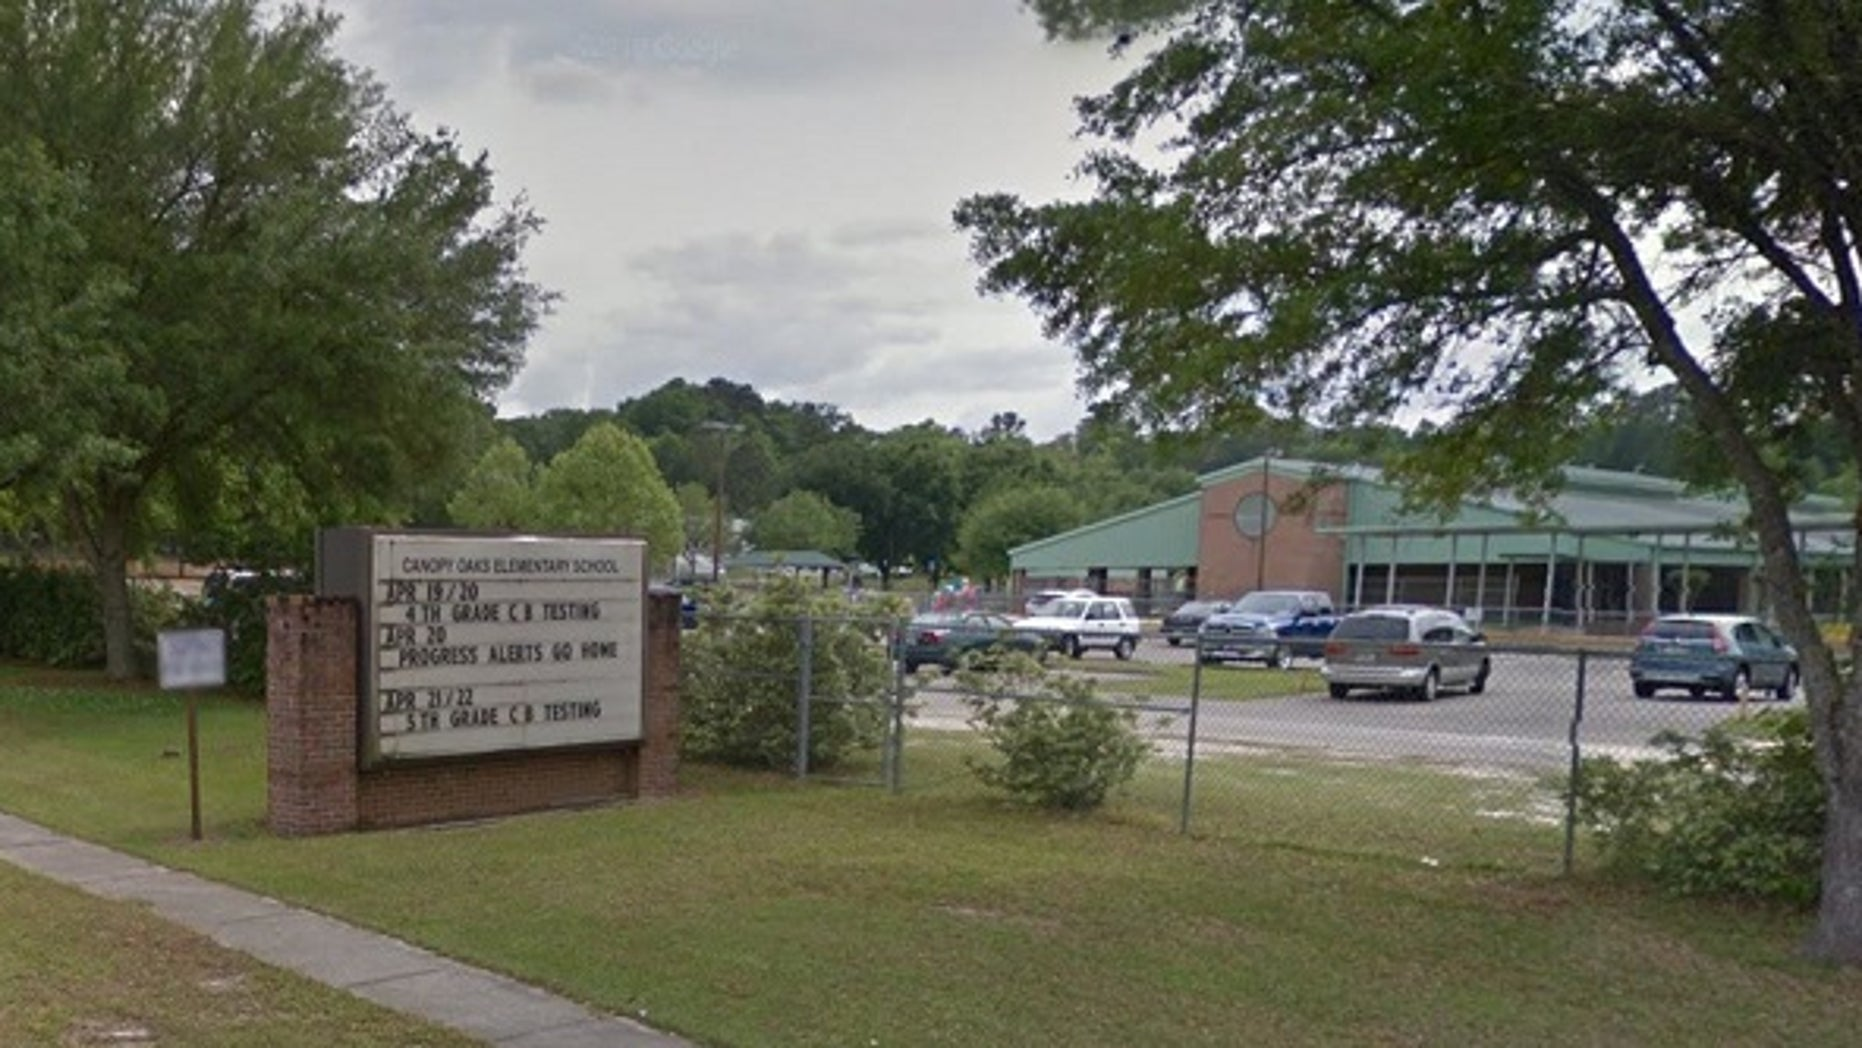 A fifth-grade teacher at Canopy Oaks Elementary in Tallahassee, Fla., asked students to use geneder-neutral pronouns in the classroom.